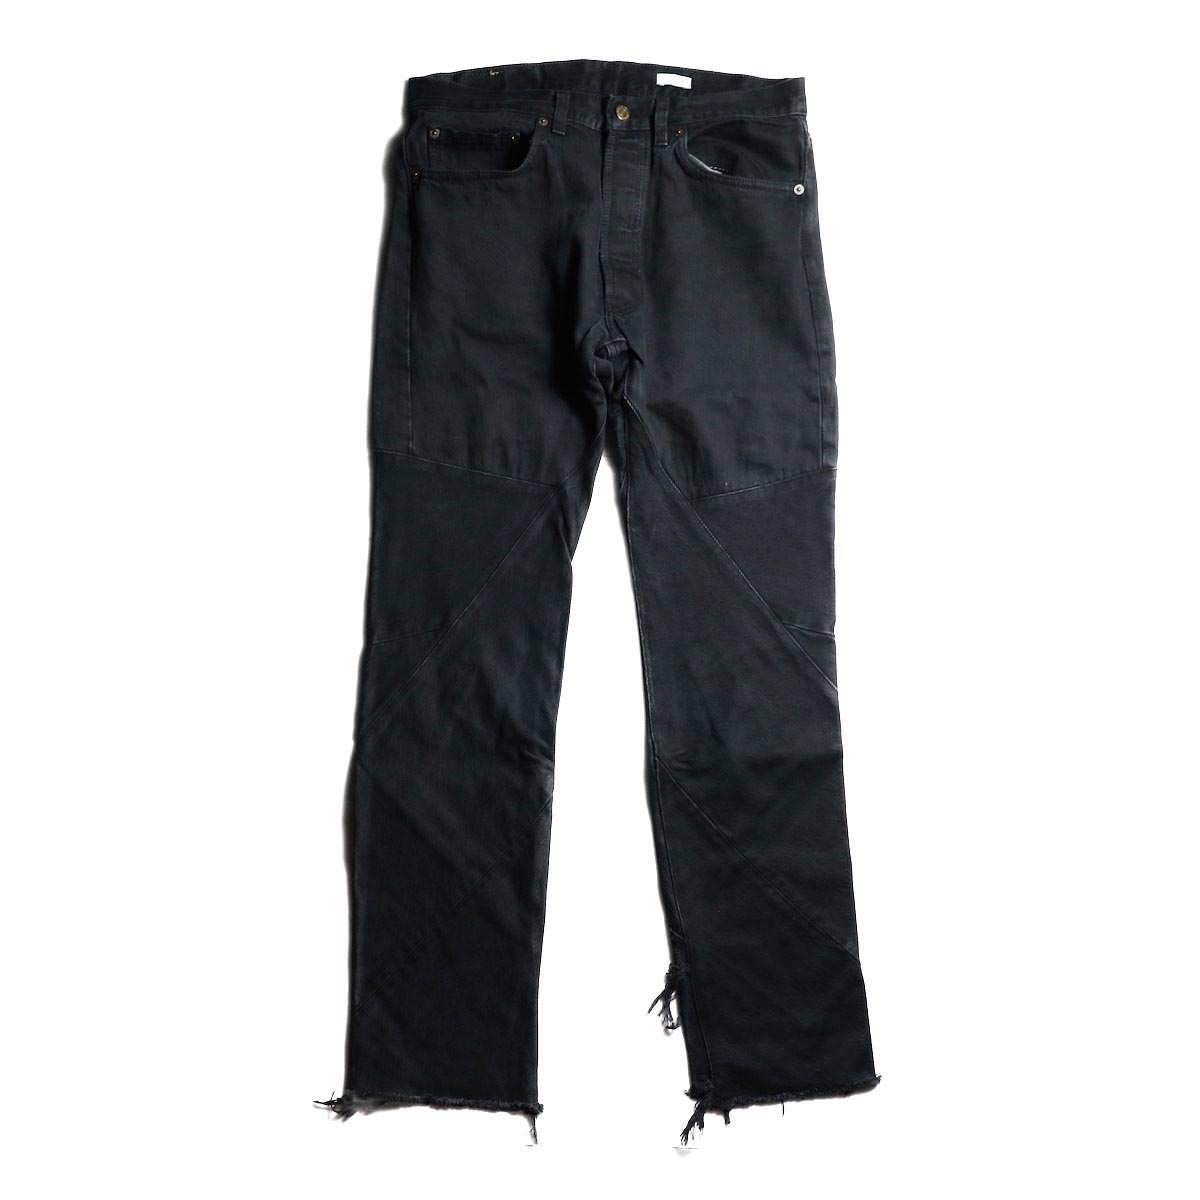 OLD PARK / SHIFT JEANS (Msize-E)